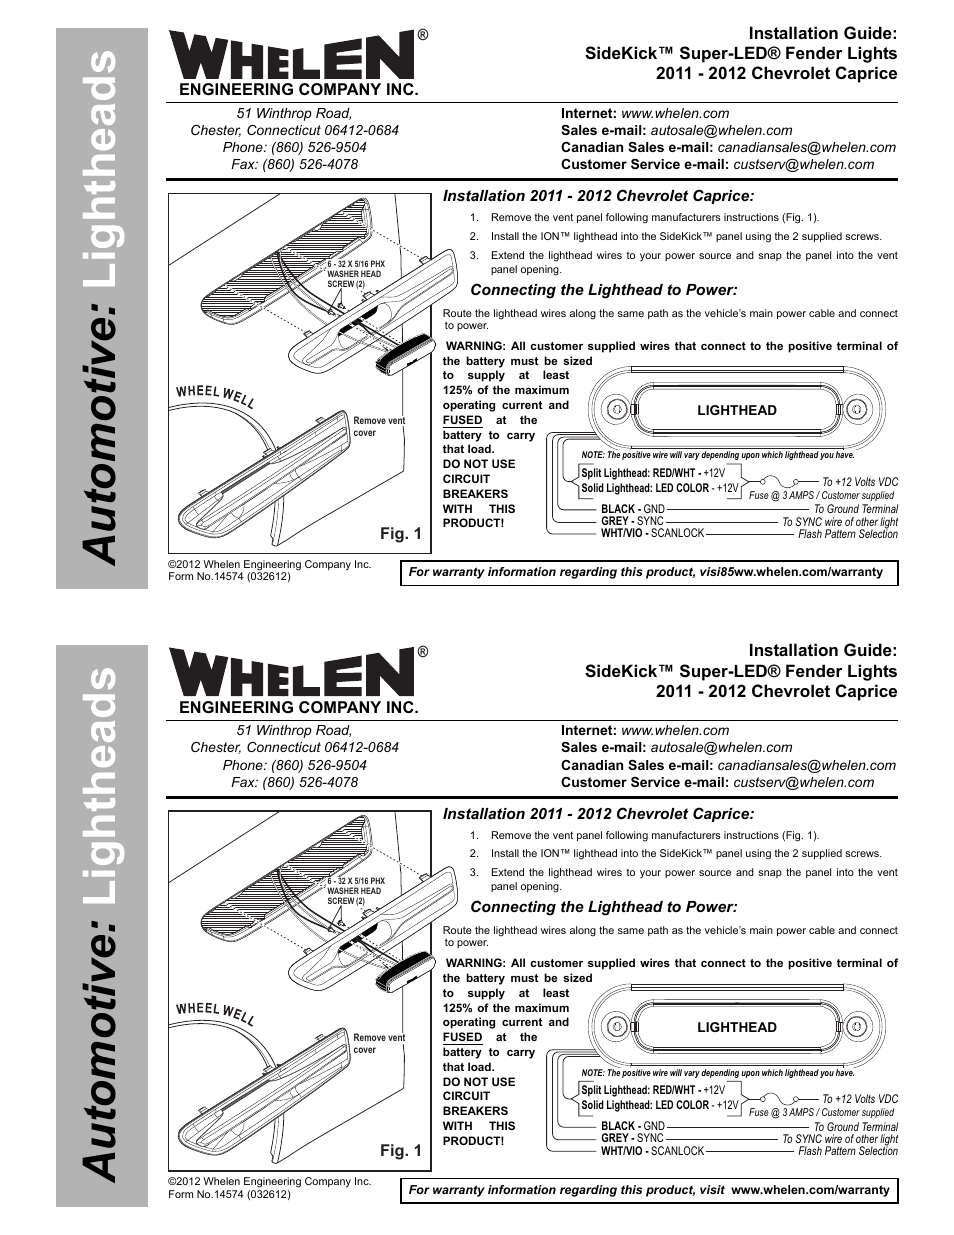 whelen sk02jj user manual